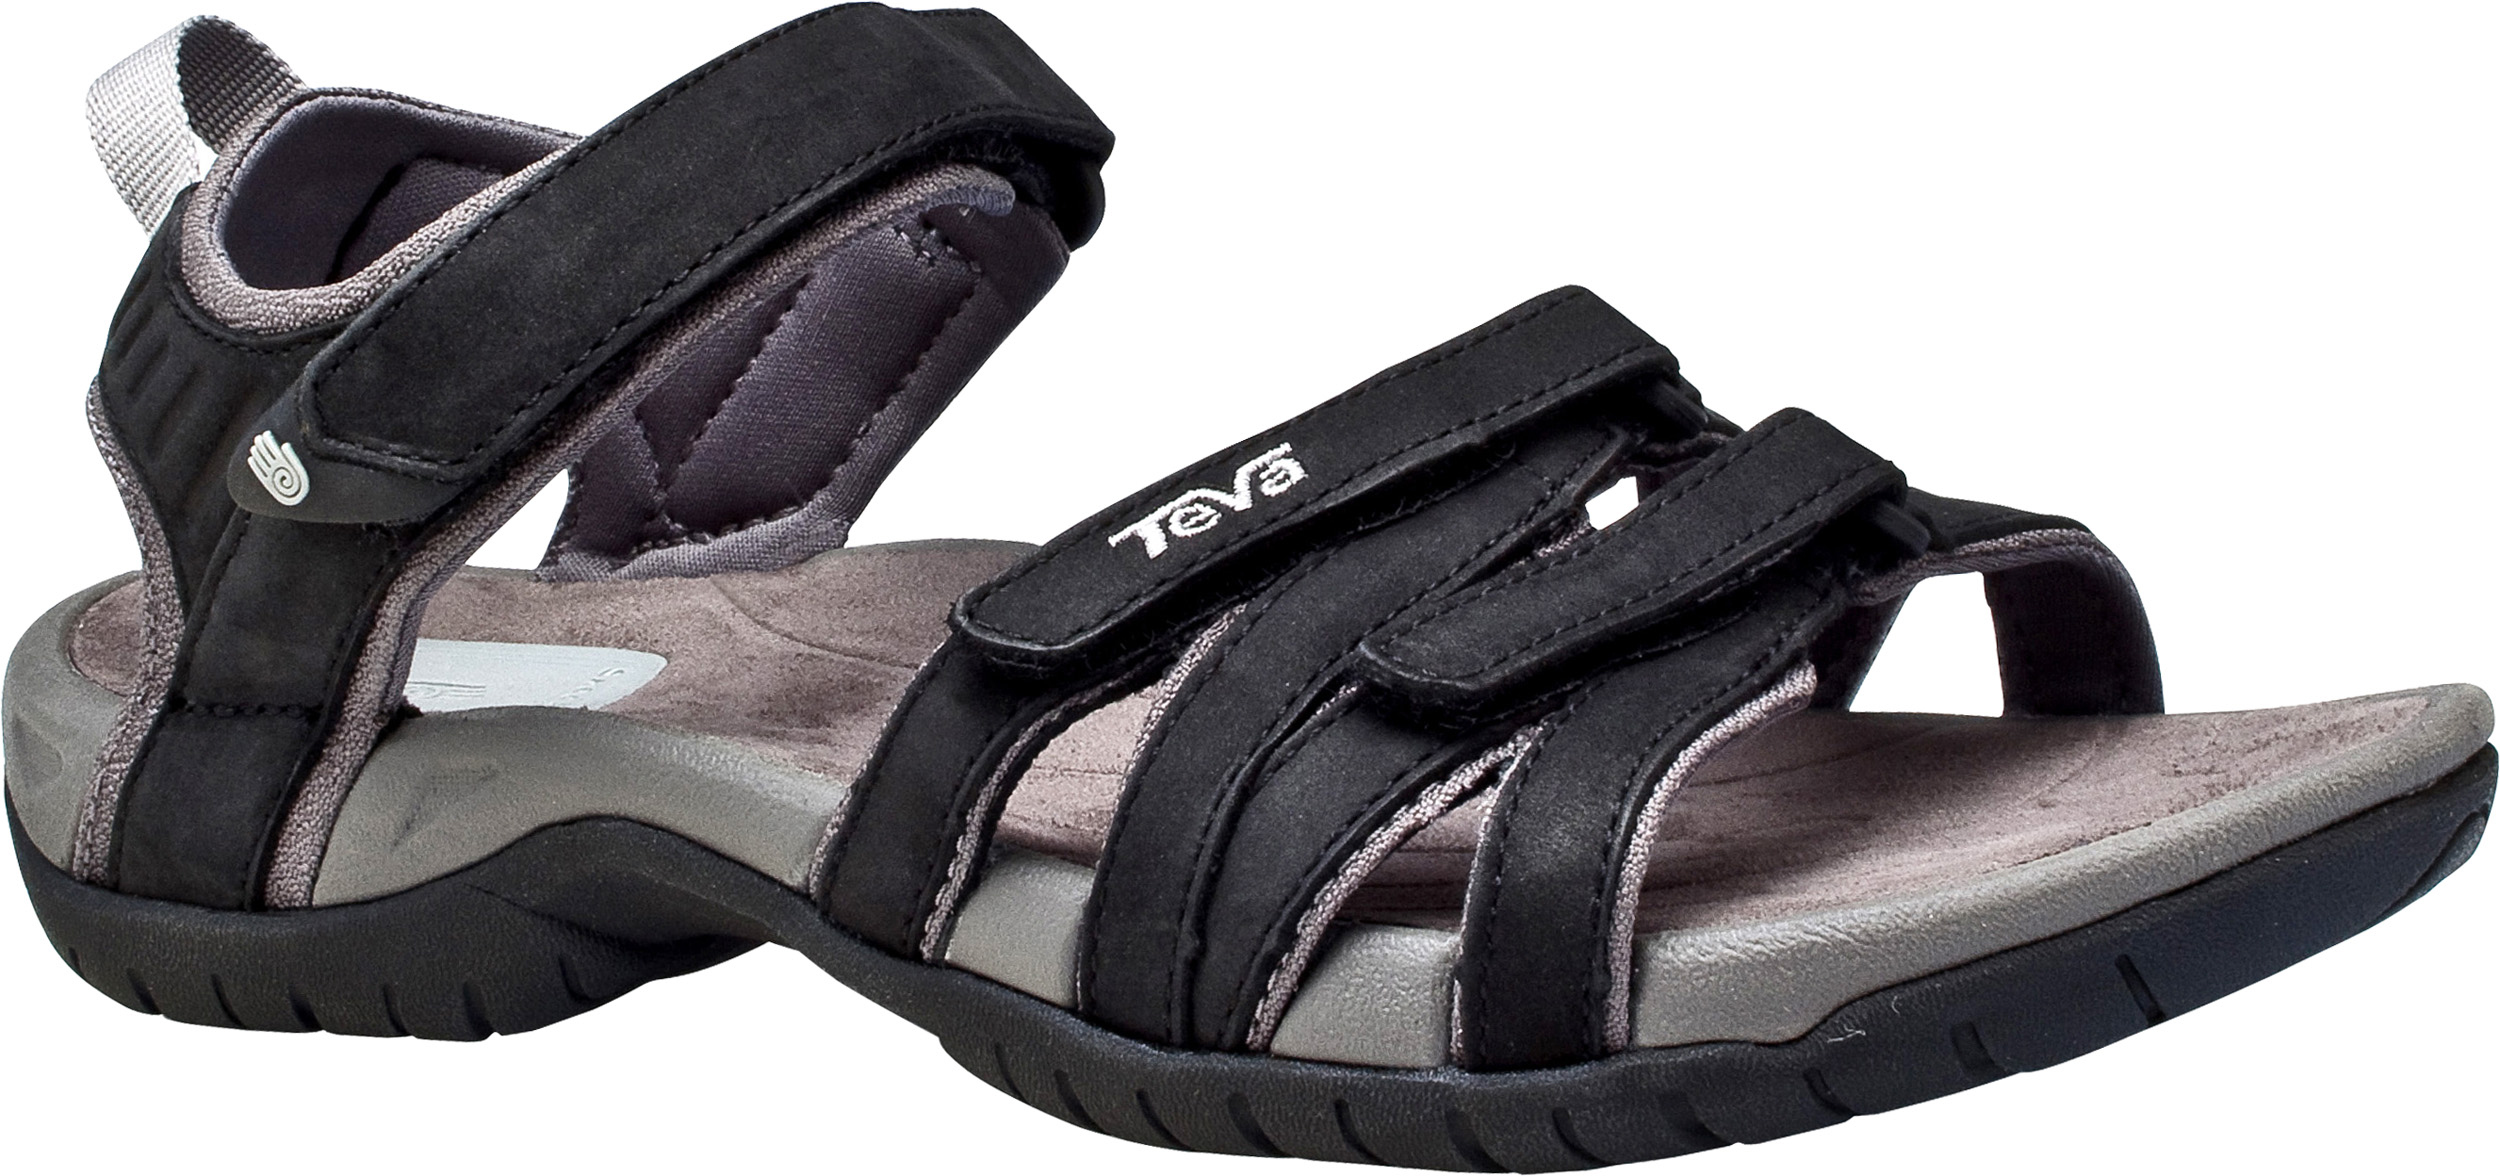 782212dc69b2 Teva Tirra Leather Sandals - Women s